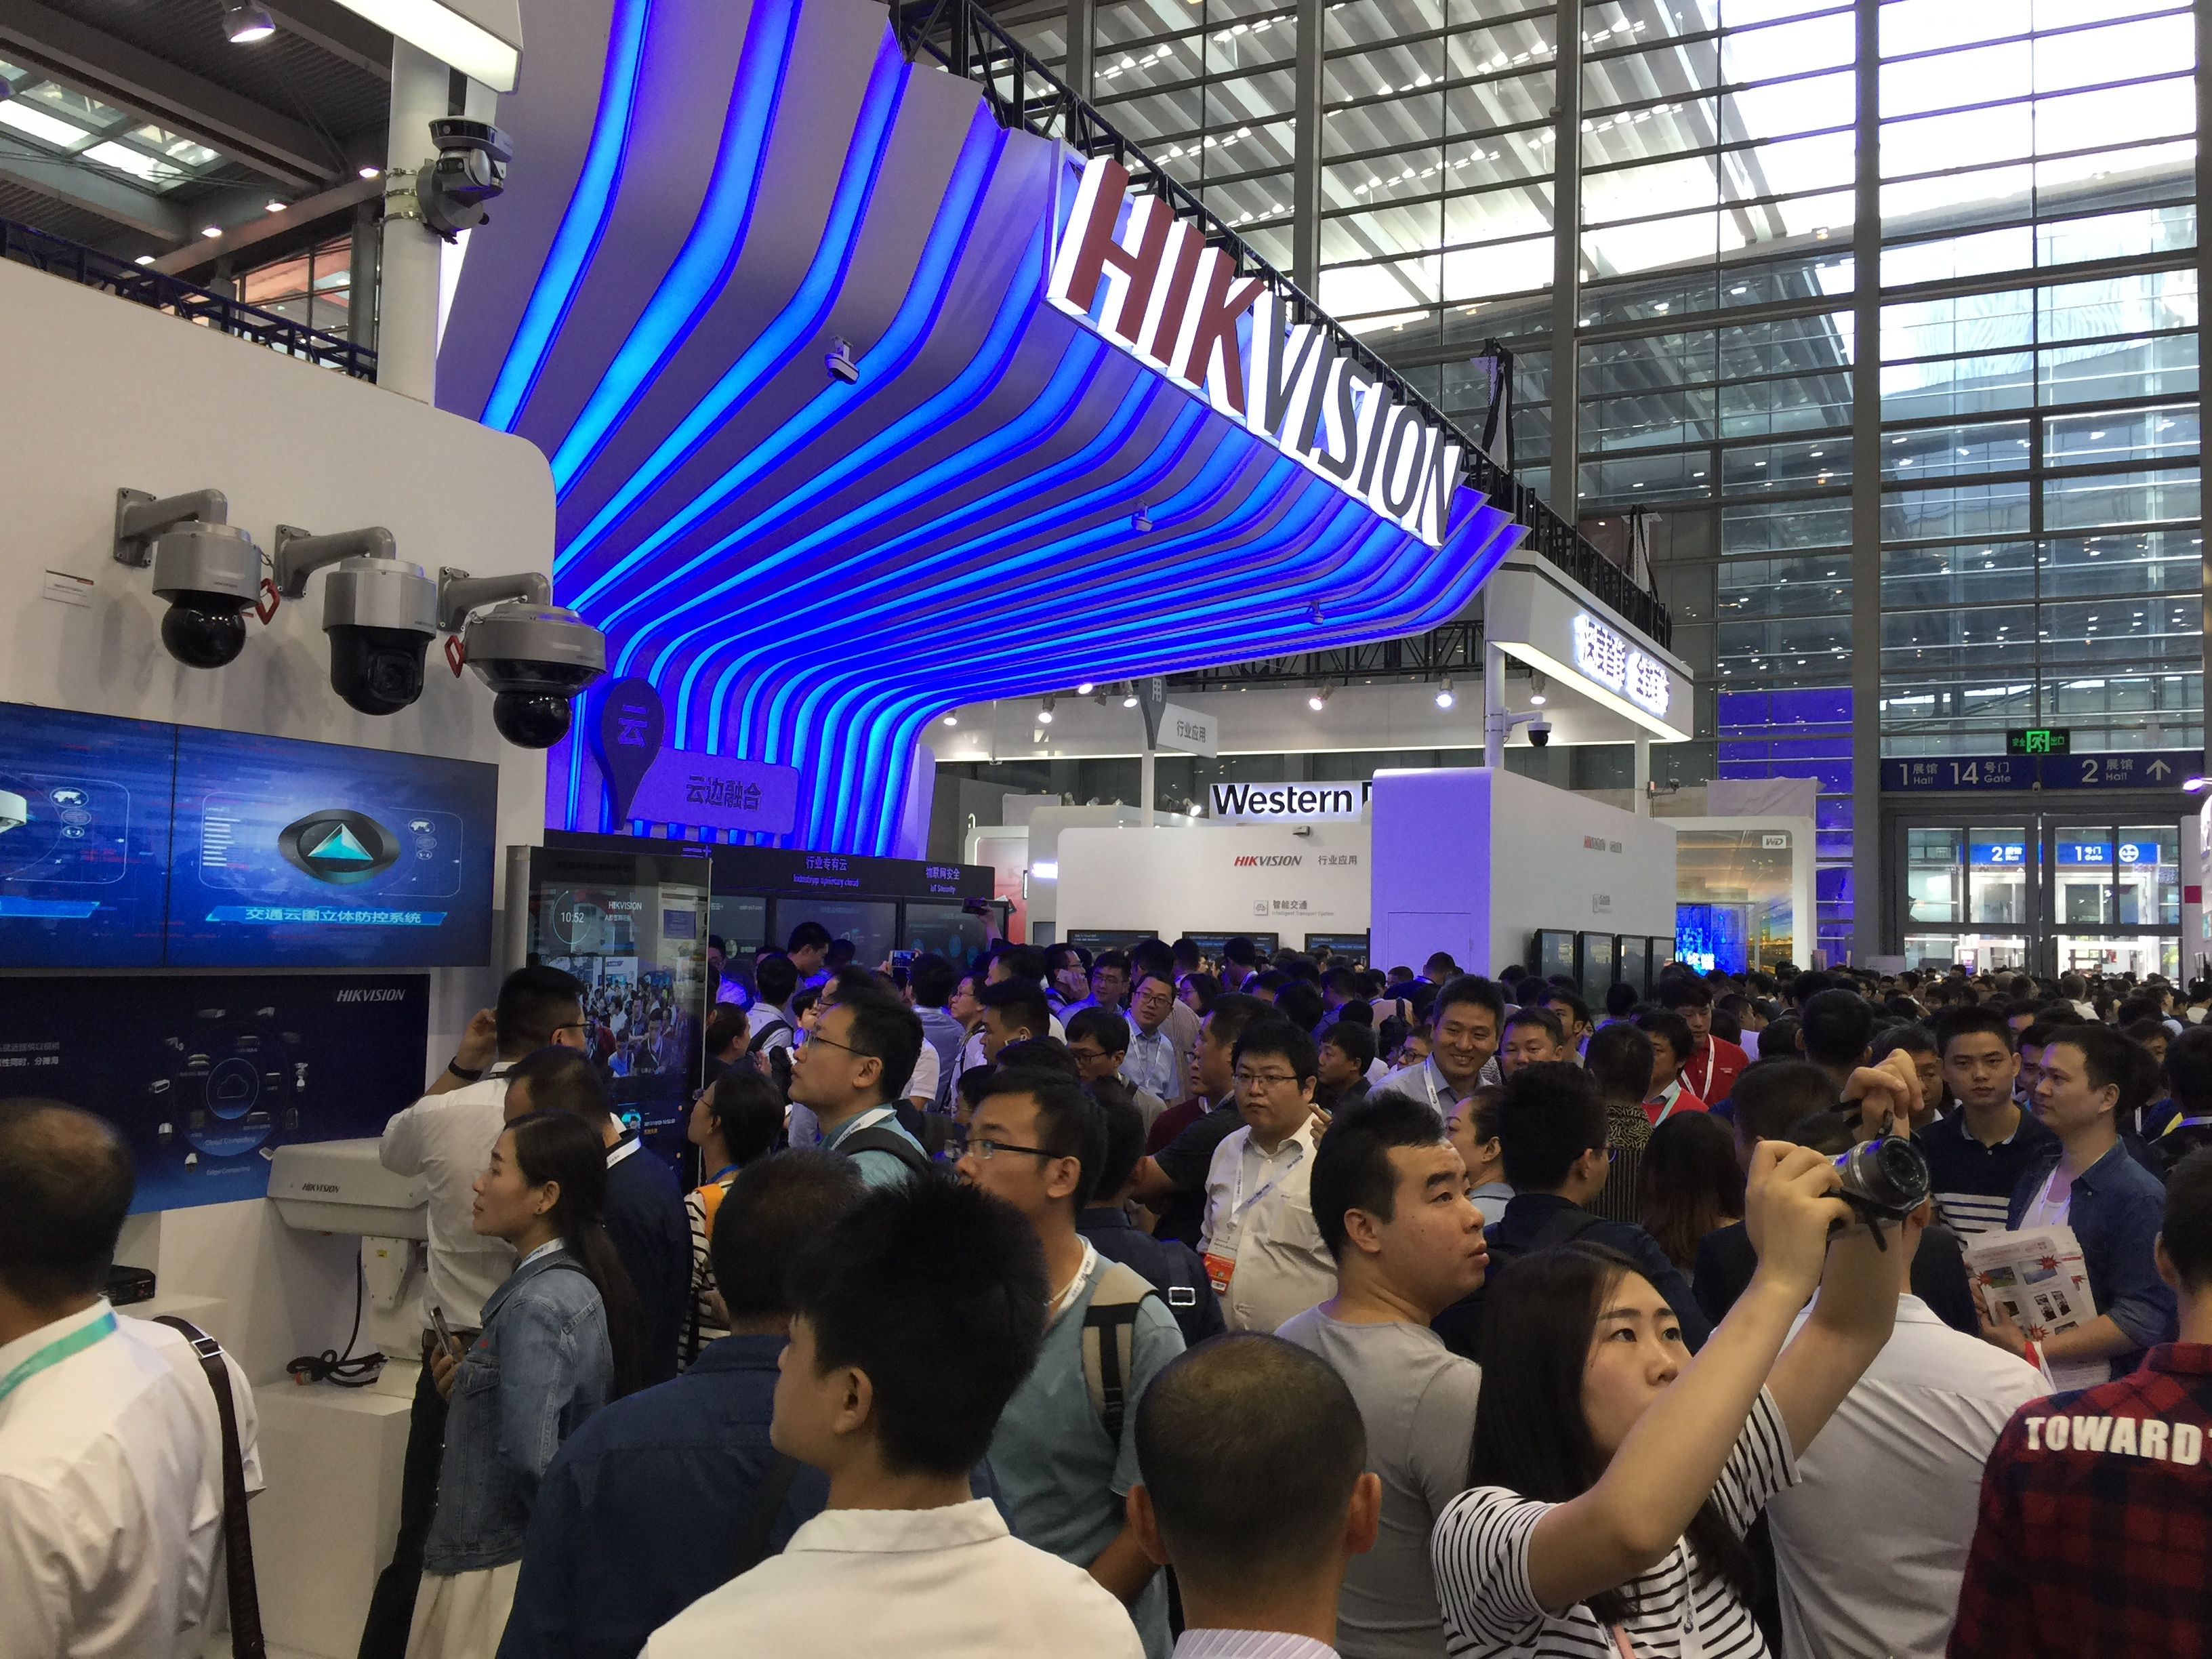 Outside the HIKVISION booth